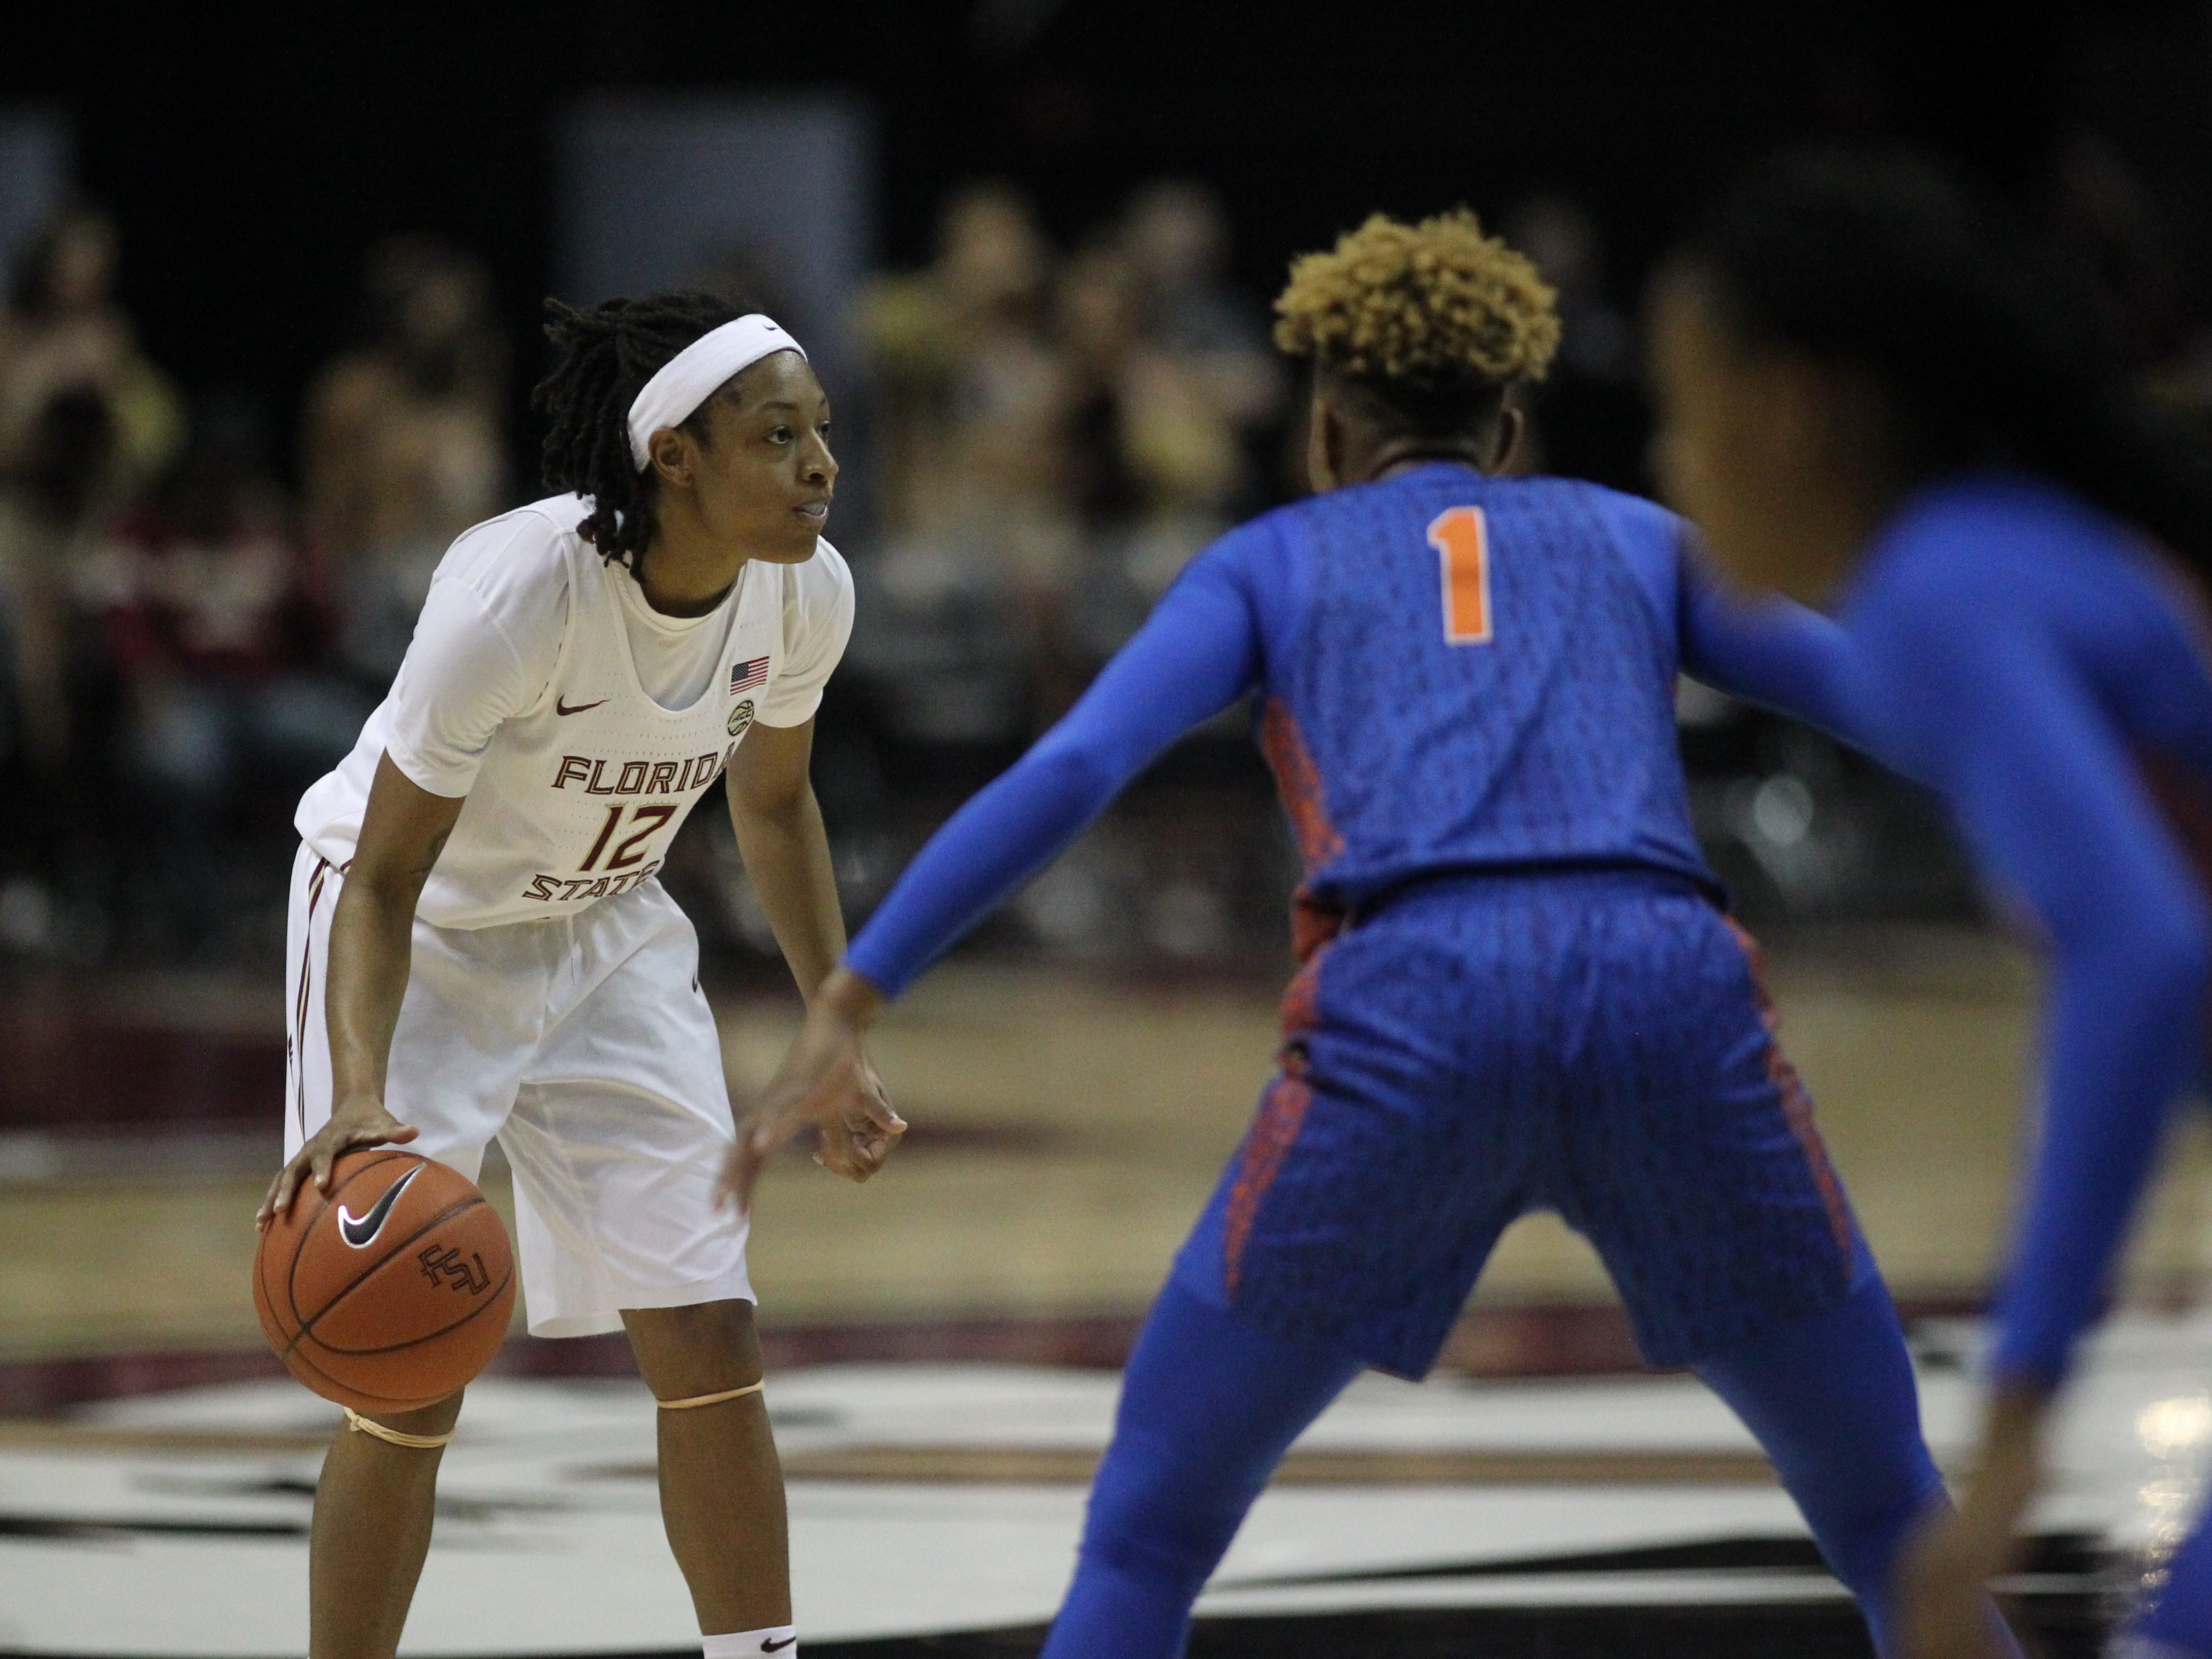 Florida State's Nicki Ekhomu looks for a pass during the first half of the Seminoles' game against Florida at the Tucker Civic Center on Nov. 11, 2018.